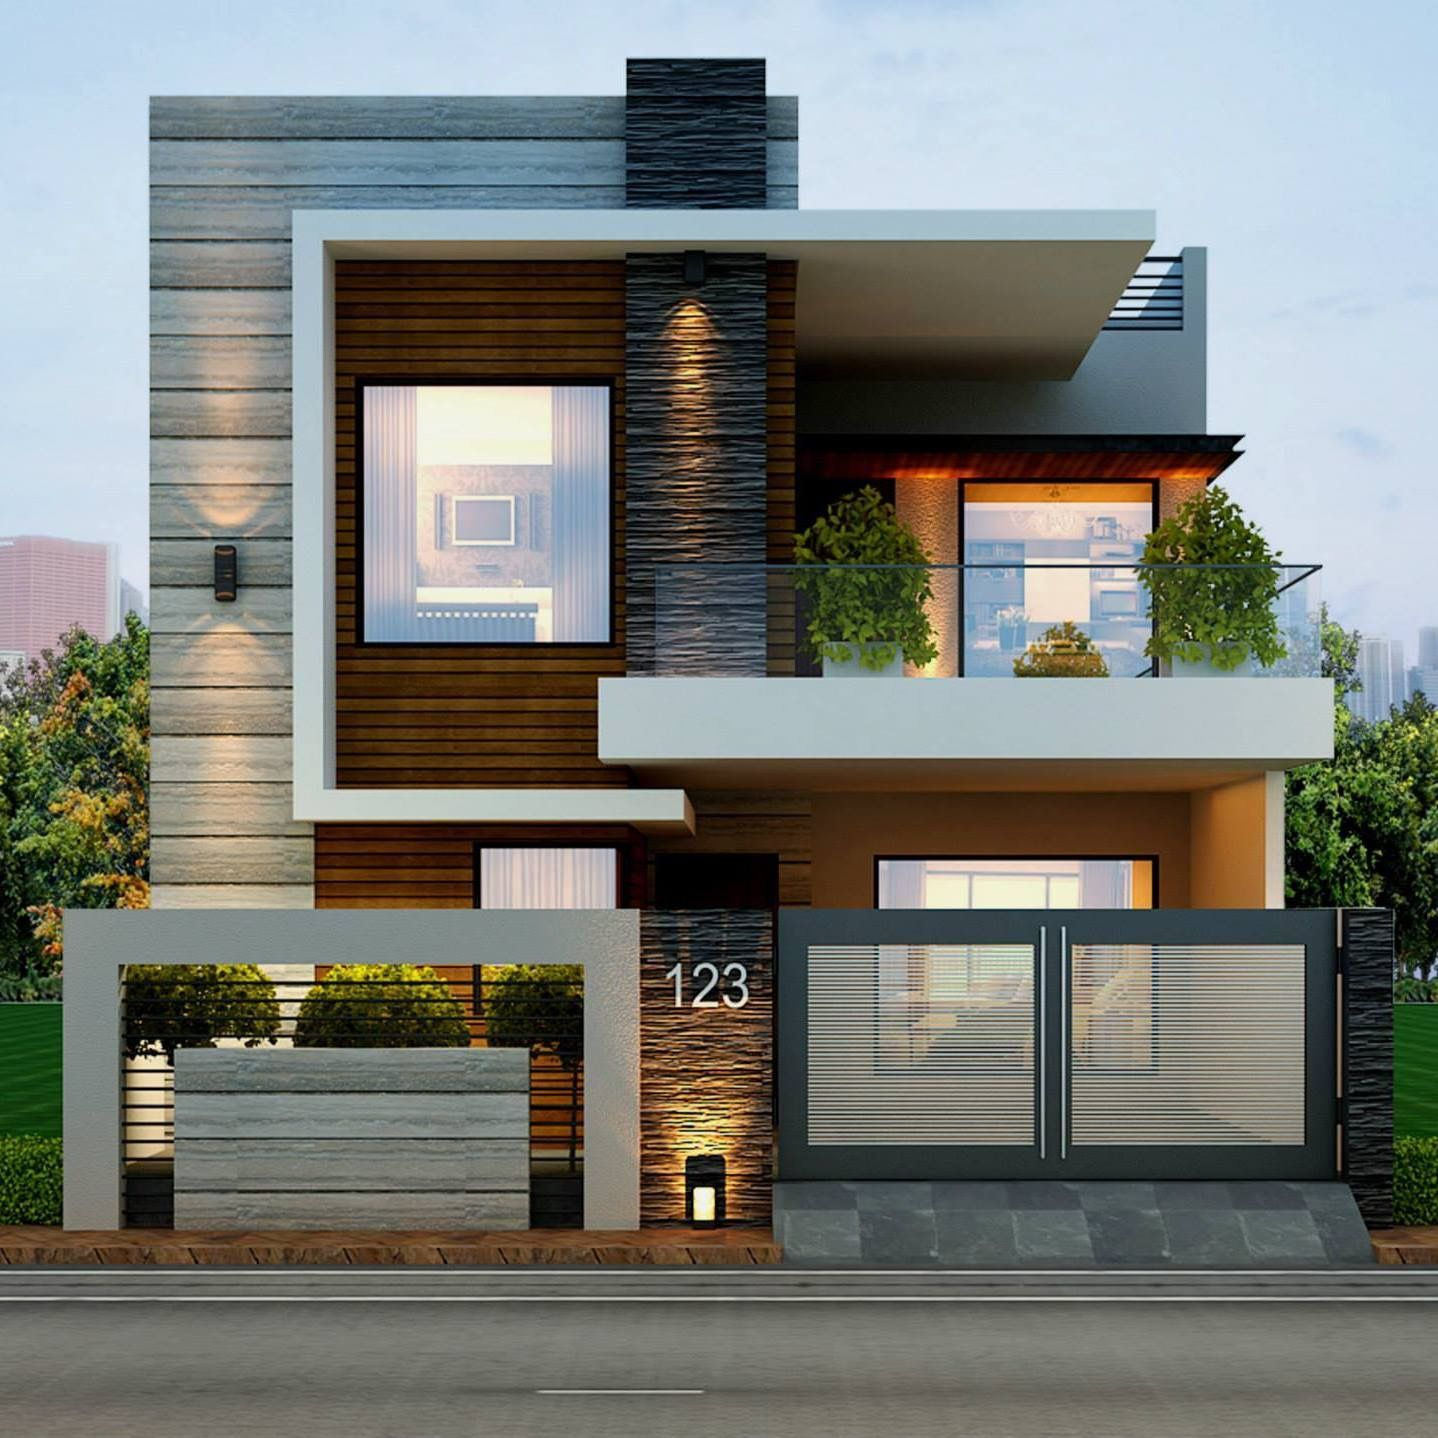 Intersecting Lines And Mixed Material Creates A Masterpiece Https Hotellook Com Countries Greece Marker 12 House Front Design Facade House Modern Tiny House